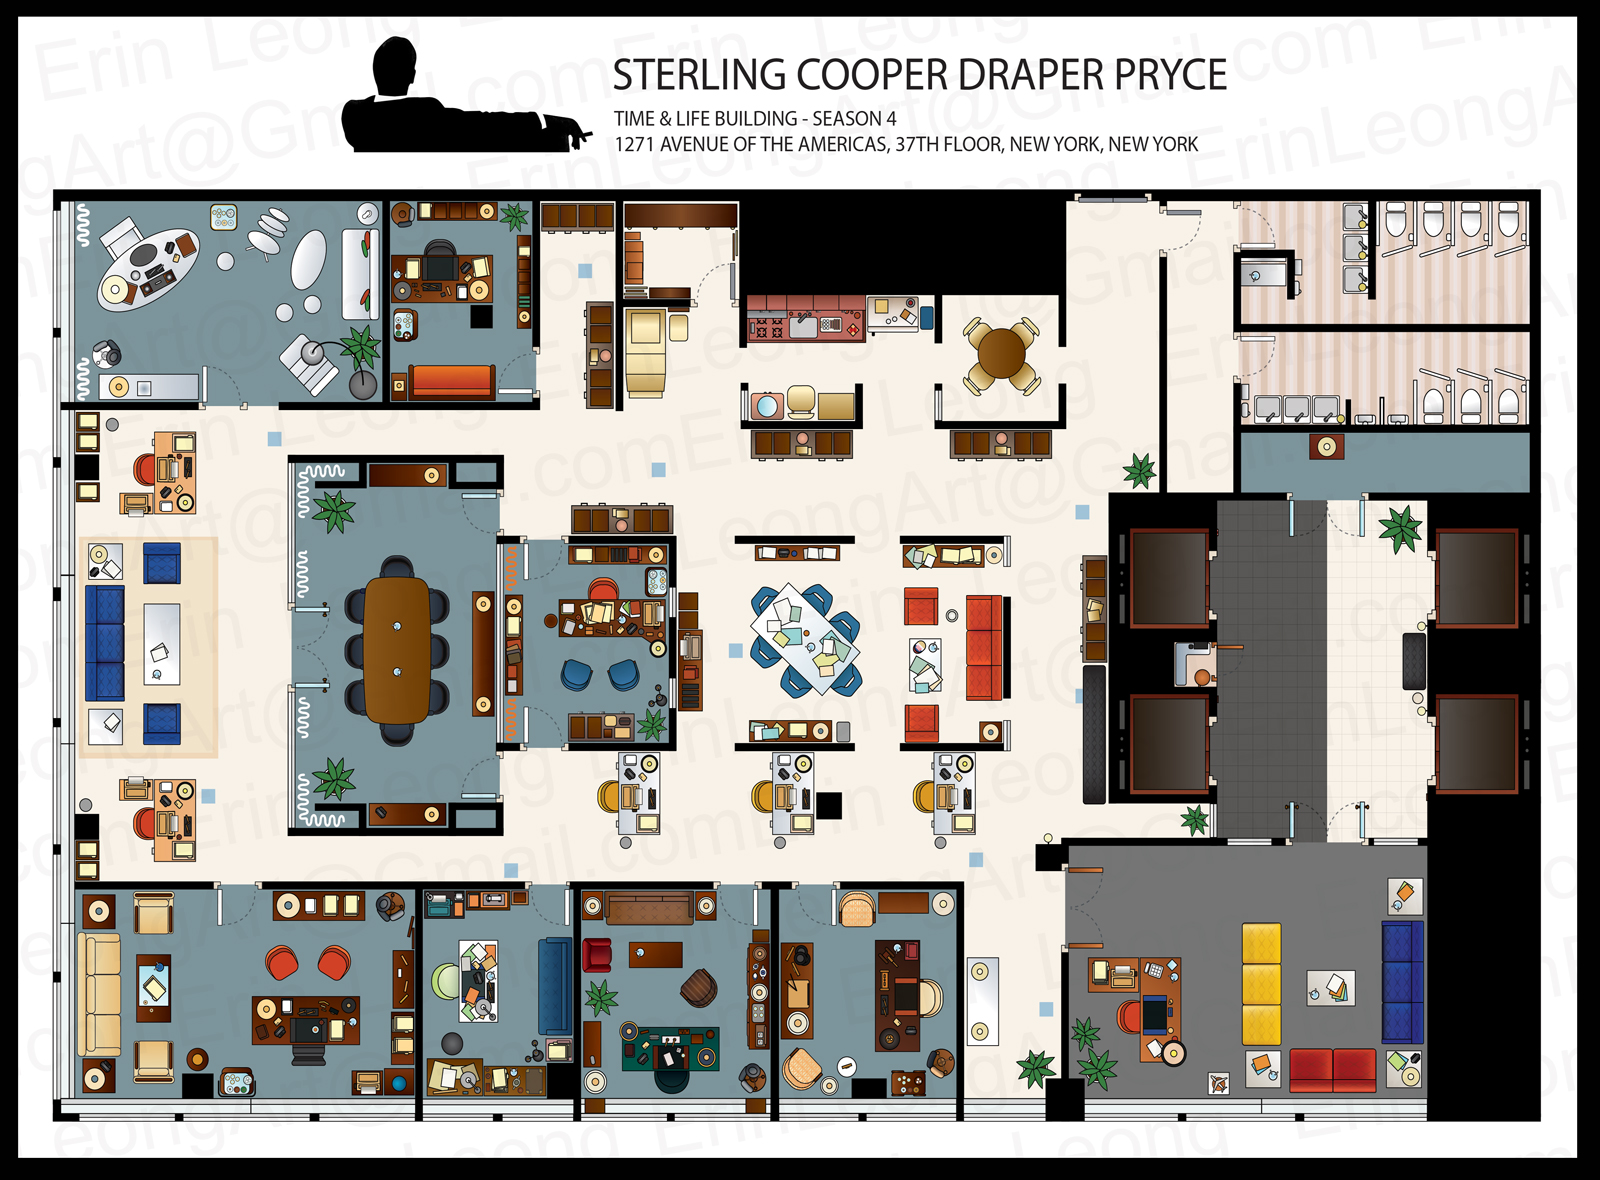 erin leong illustrated floorplans for the big bang theory erin leong illustrated floorplans for the big bang theory